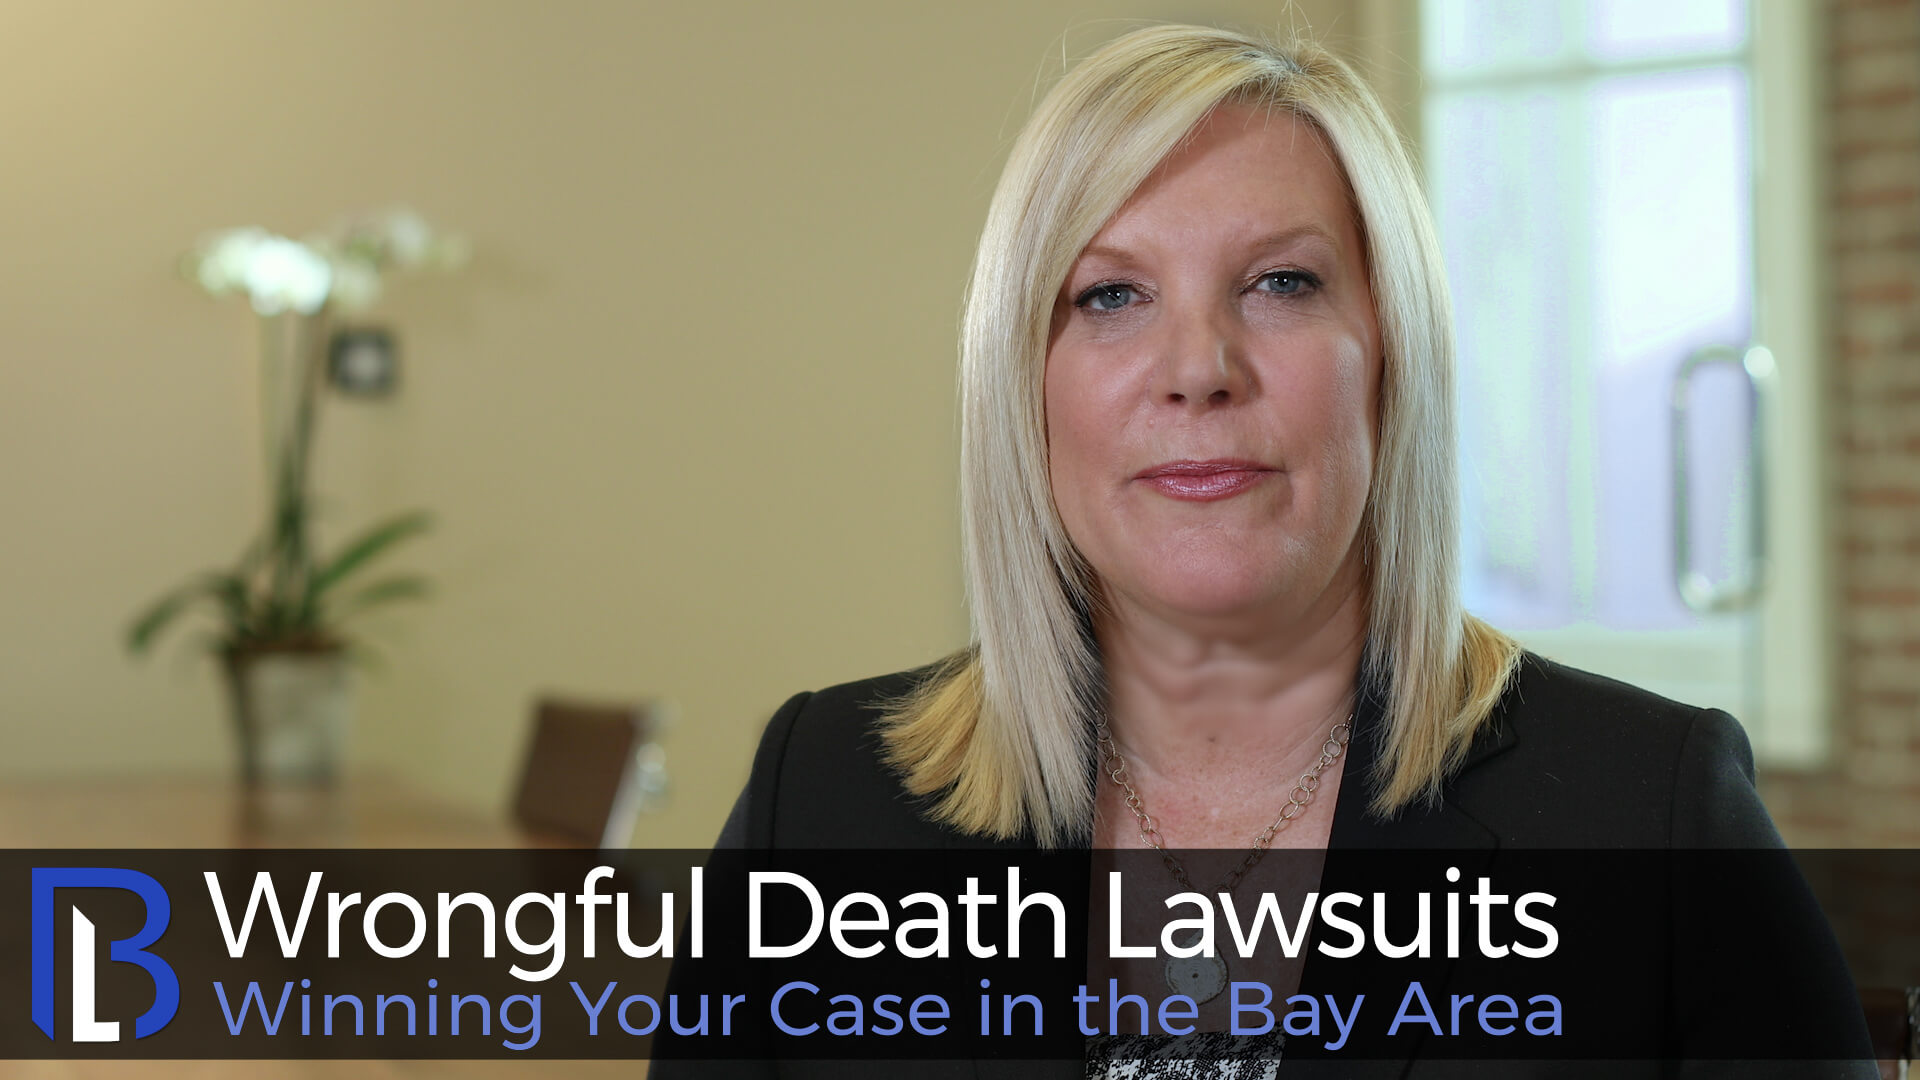 When you need an experienced harassment attorney, contact our East Bay employment law Law firm.